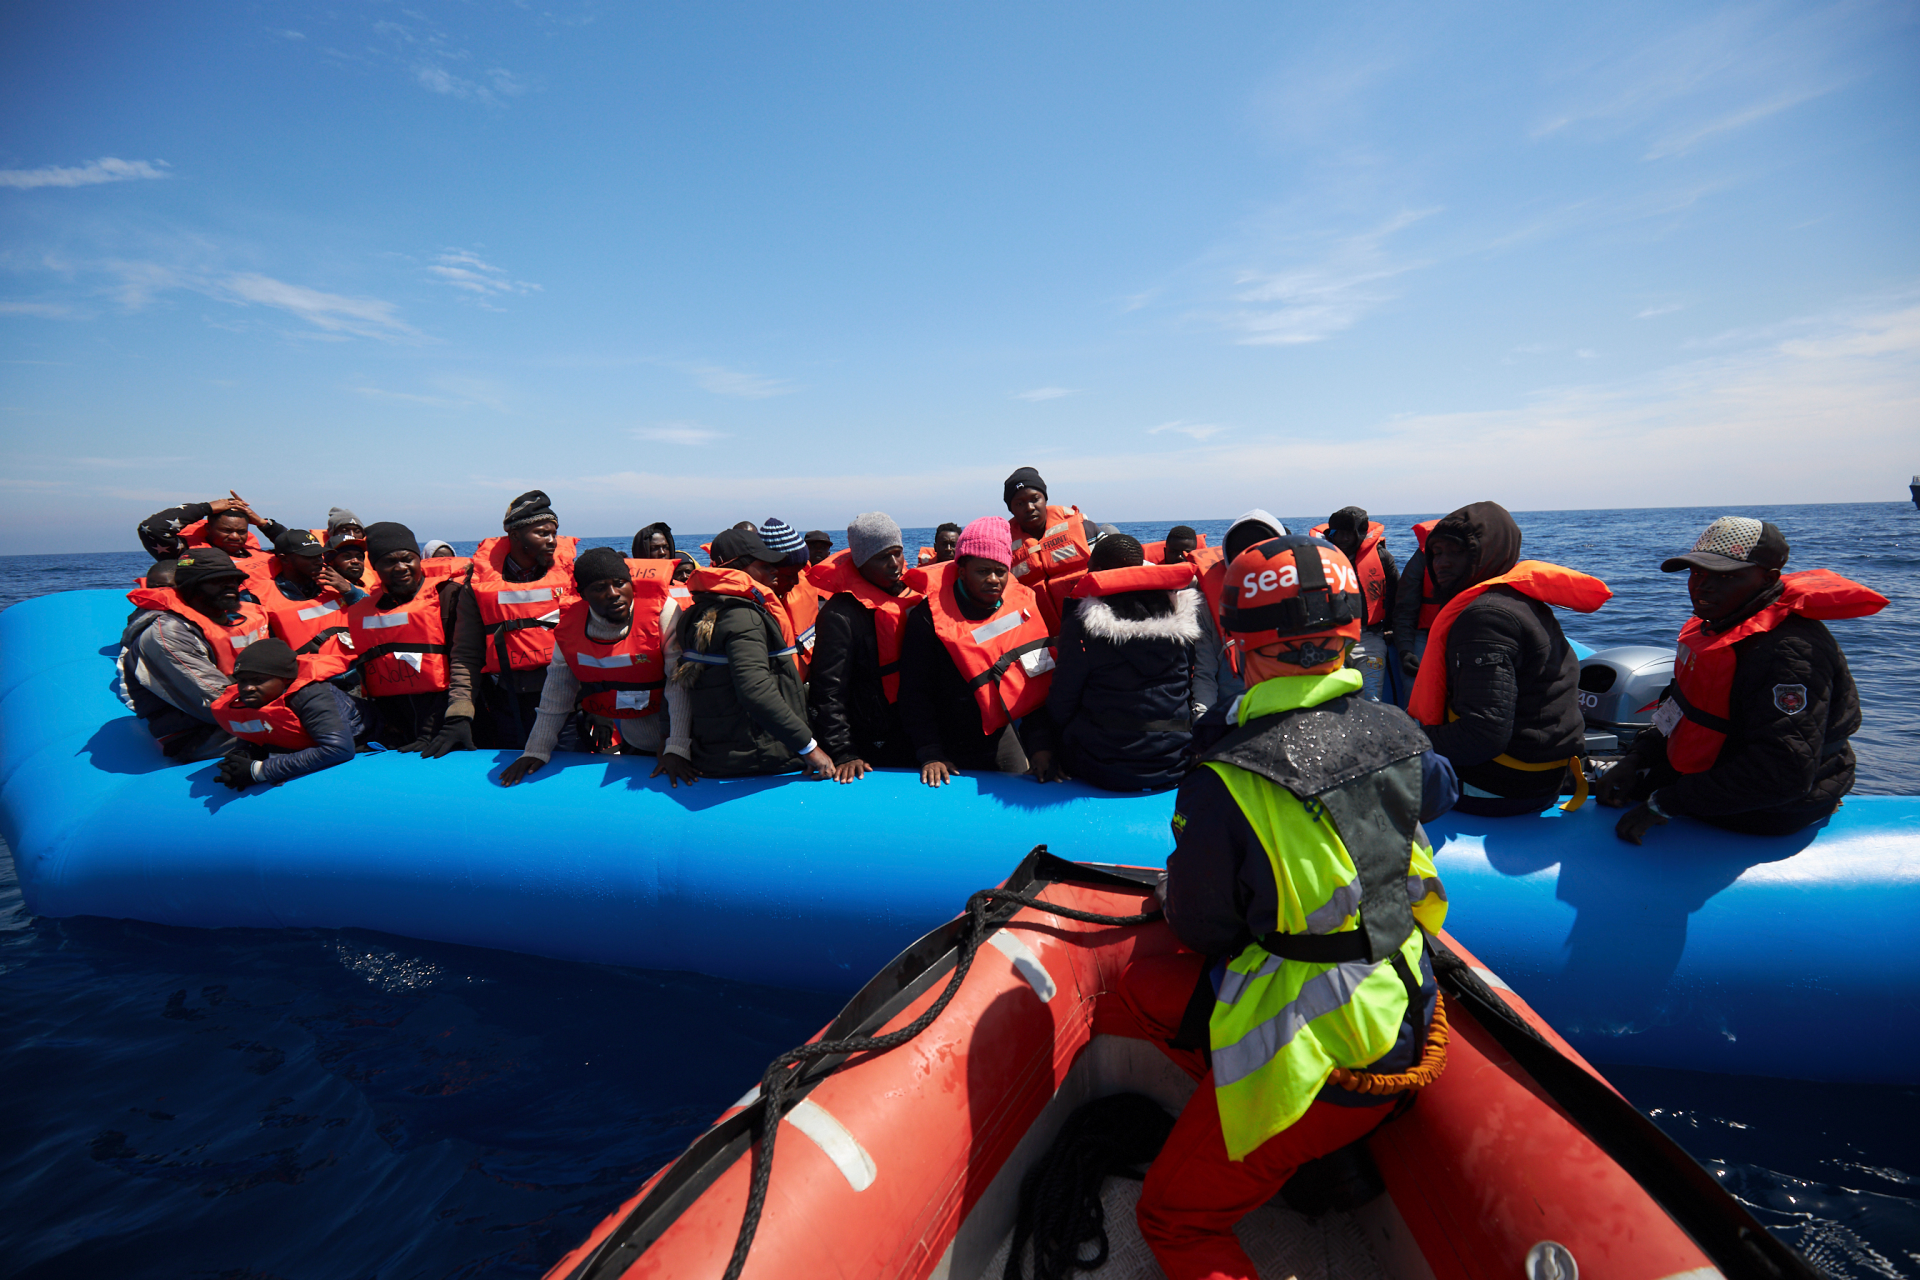 Westlake Legal Group ce8c66b6-ContentBroker_contentid-8008b88ef2b044b9ab5af957f9b534d2 Malta announces deal to distribute 64 migrants from NGO ship VALLETTA, Malta fox-news/world/world-regions/europe fox-news/world fnc/world fnc Associated Press article 364acc07-6292-536b-b58a-b23556f2eadc